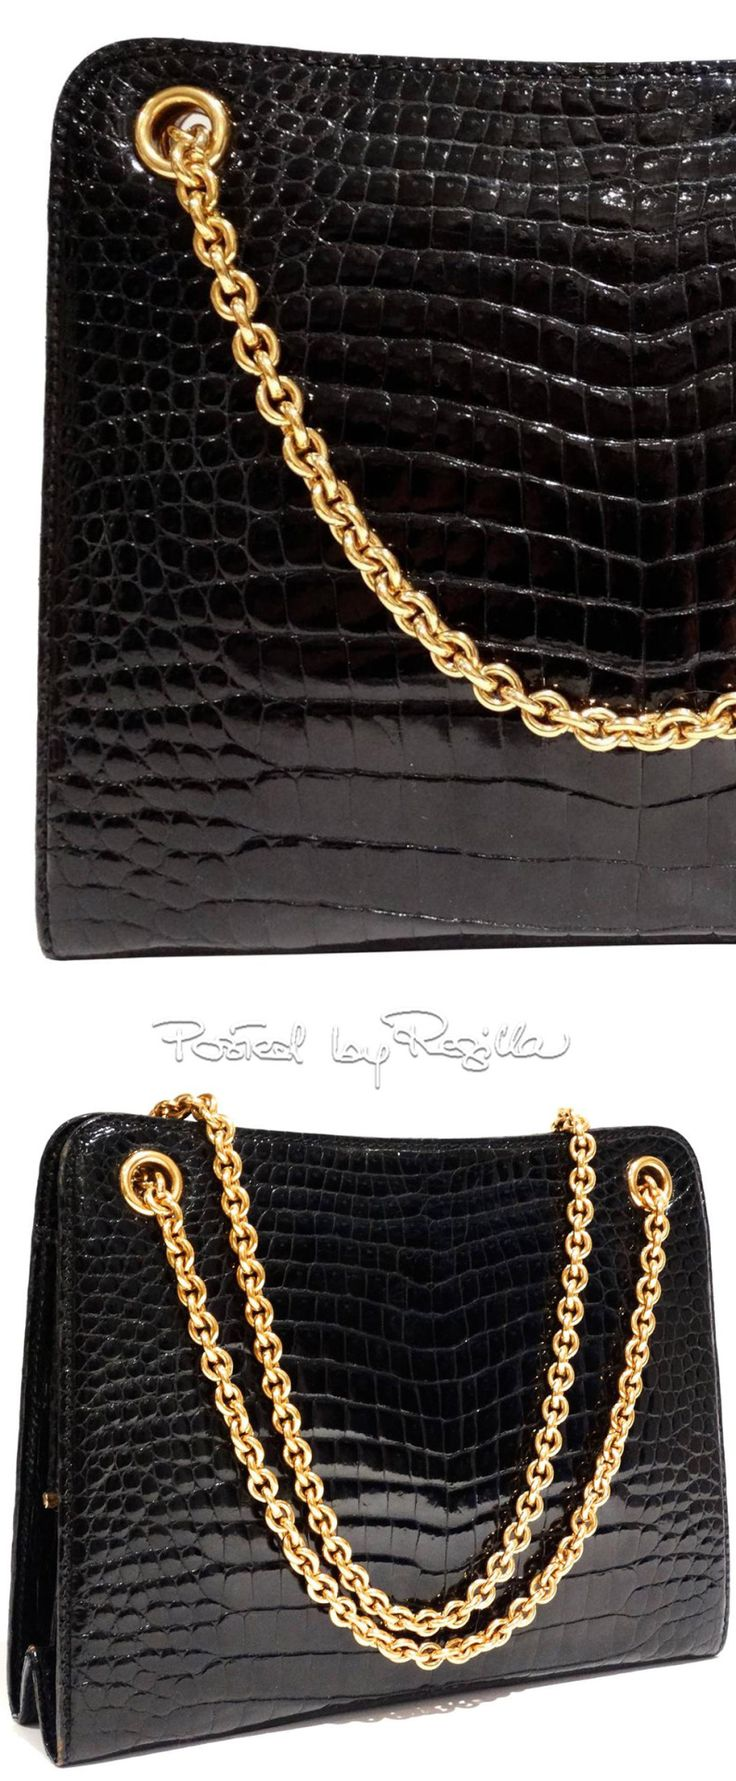 Regilla ⚜ Gucci, Black Crocodile Handbag 1950s